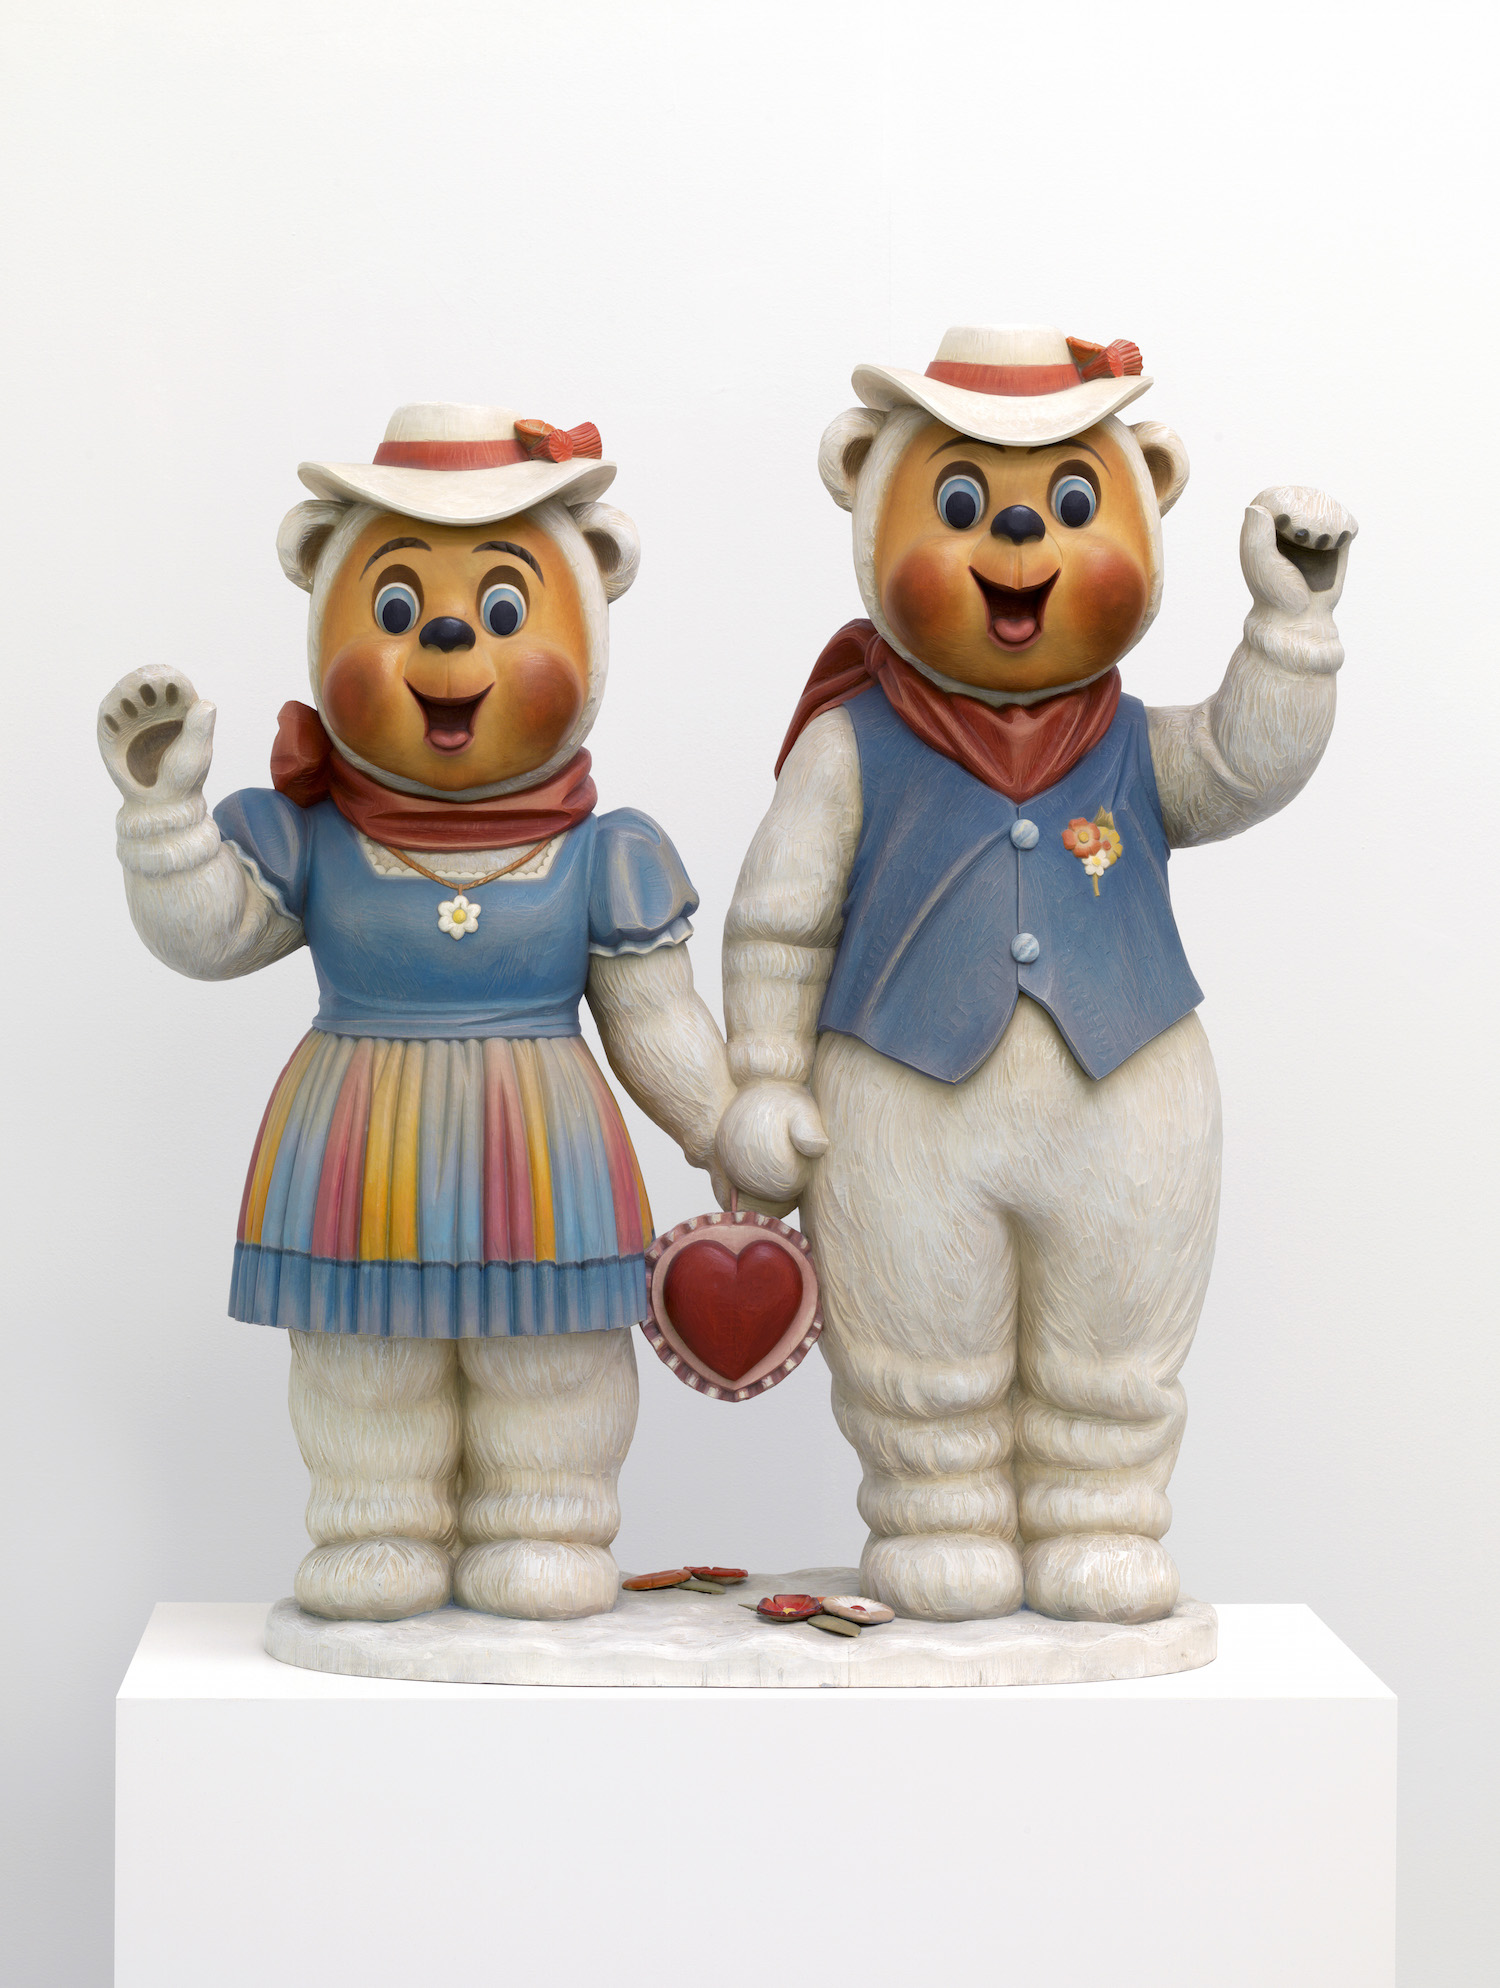 Jeff Koons, Winter Bears, 1988. Artist Rooms, Tate and National Galleries of Scotland. Acquired jointly through The d'Offay Donation with assistance from the National Heritage Memorial Fund and the Art Fund 2008, © Jeff Koons. Image courtesy Norwich Castle Museum and Art Gallery